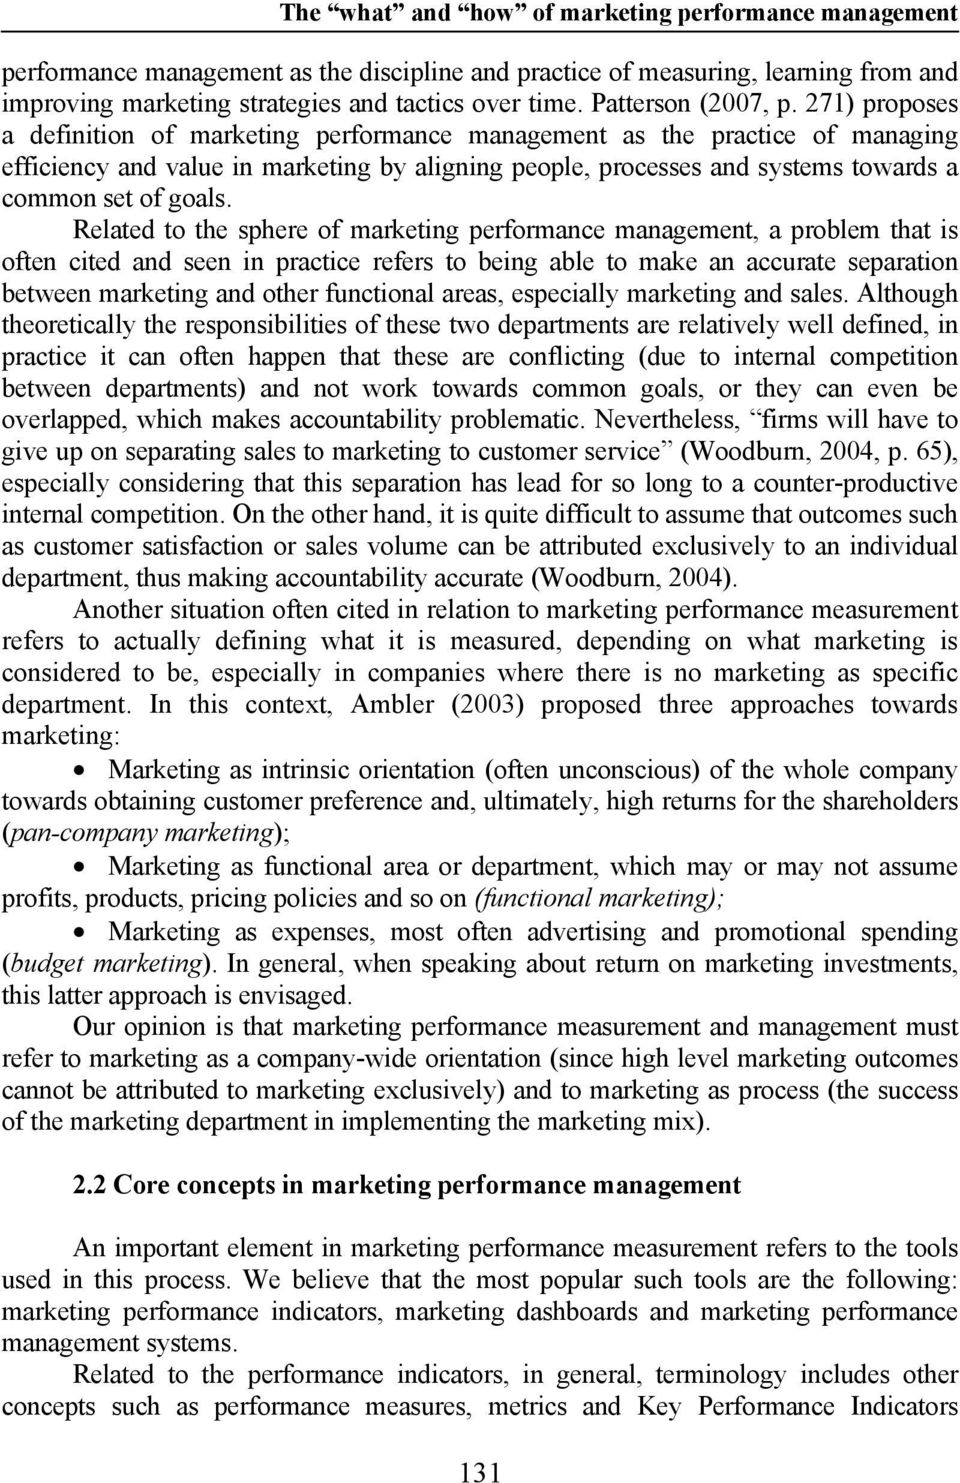 271) proposes a definition of marketing performance management as the practice of managing efficiency and value in marketing by aligning people, processes and systems towards a common set of goals.